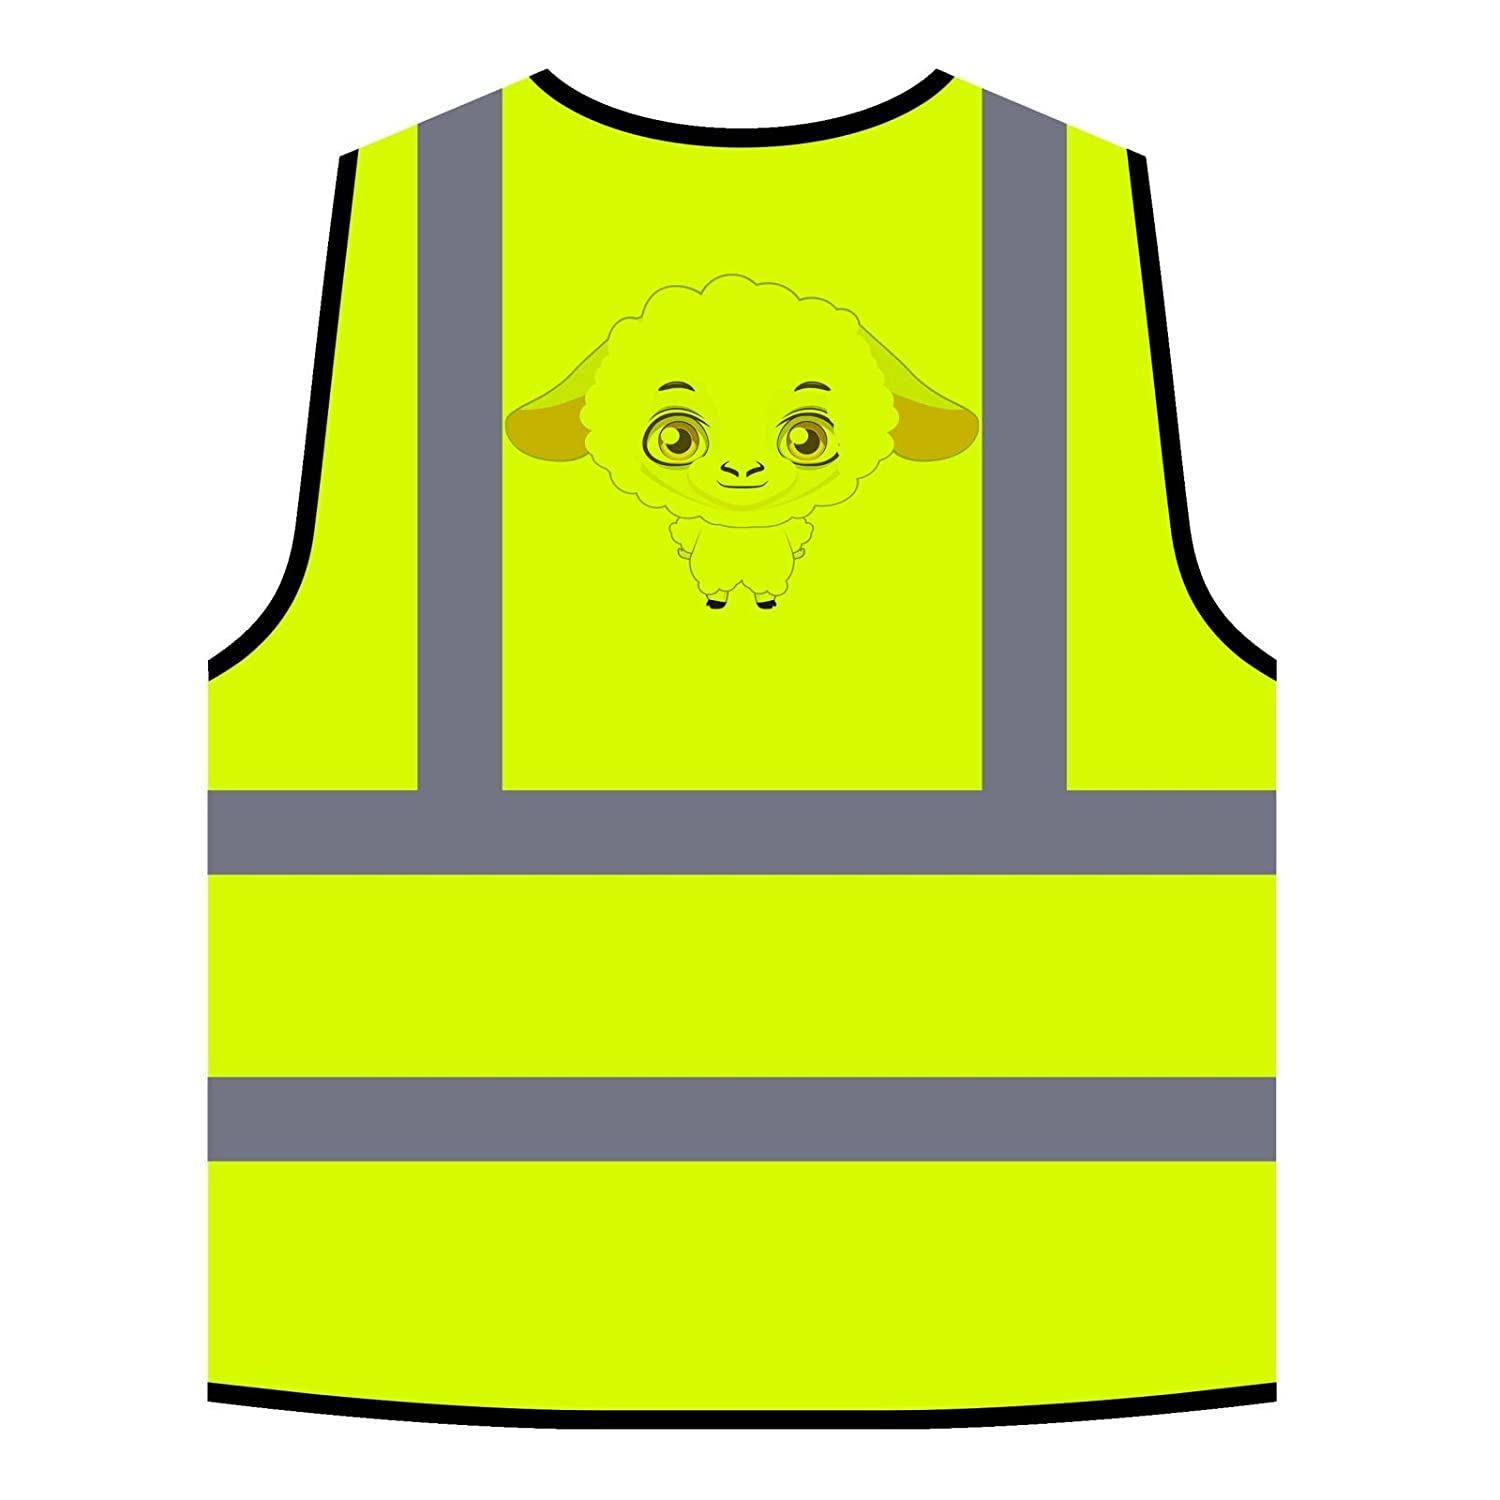 Funny Farm Animal Collection Cute Pet New Personalized Hi Visibility Yellow Safety Jacket Vest Waistcoat c356v